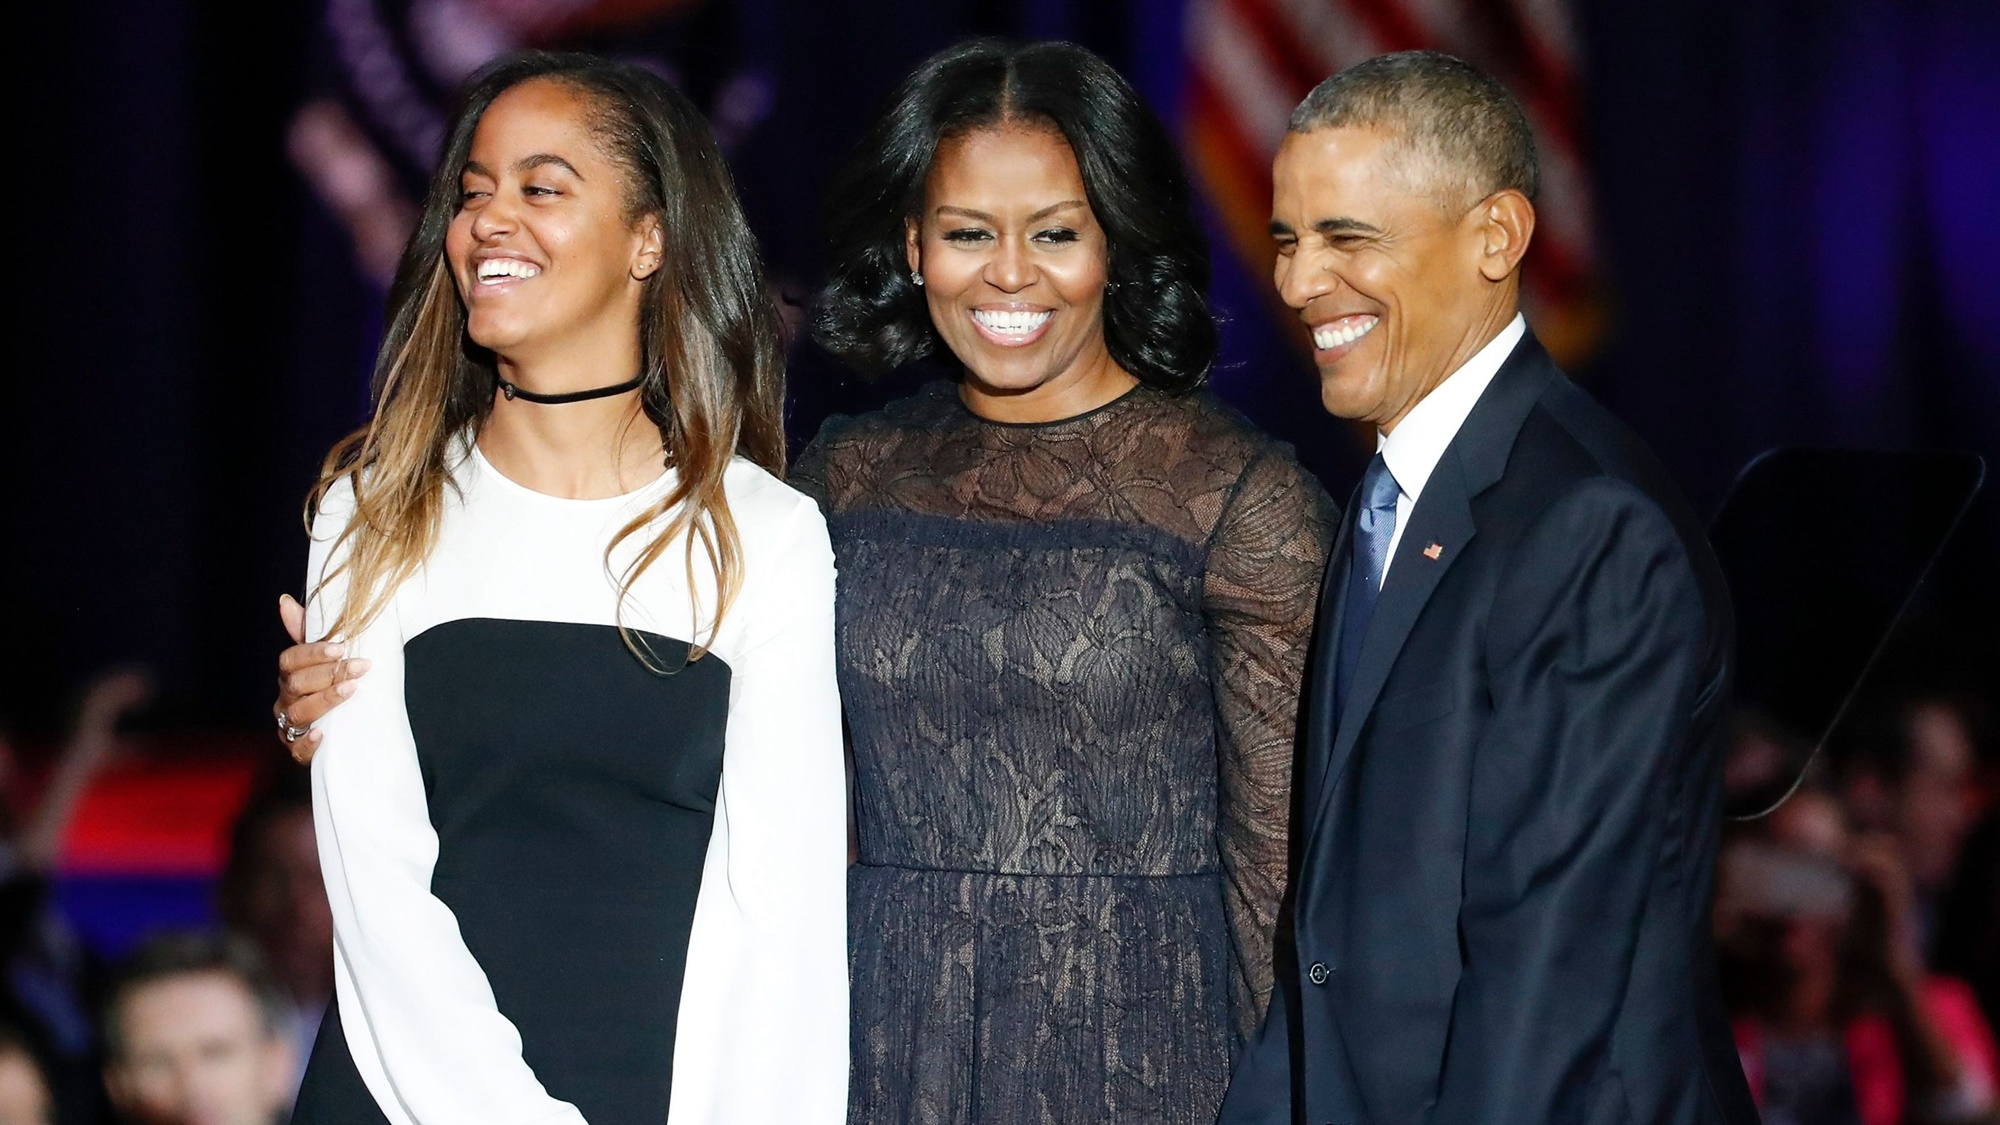 barack-obamas-daughter-malias-secret-facebook-account-revealed-she-has-an-interesting-take-on-donald-trump